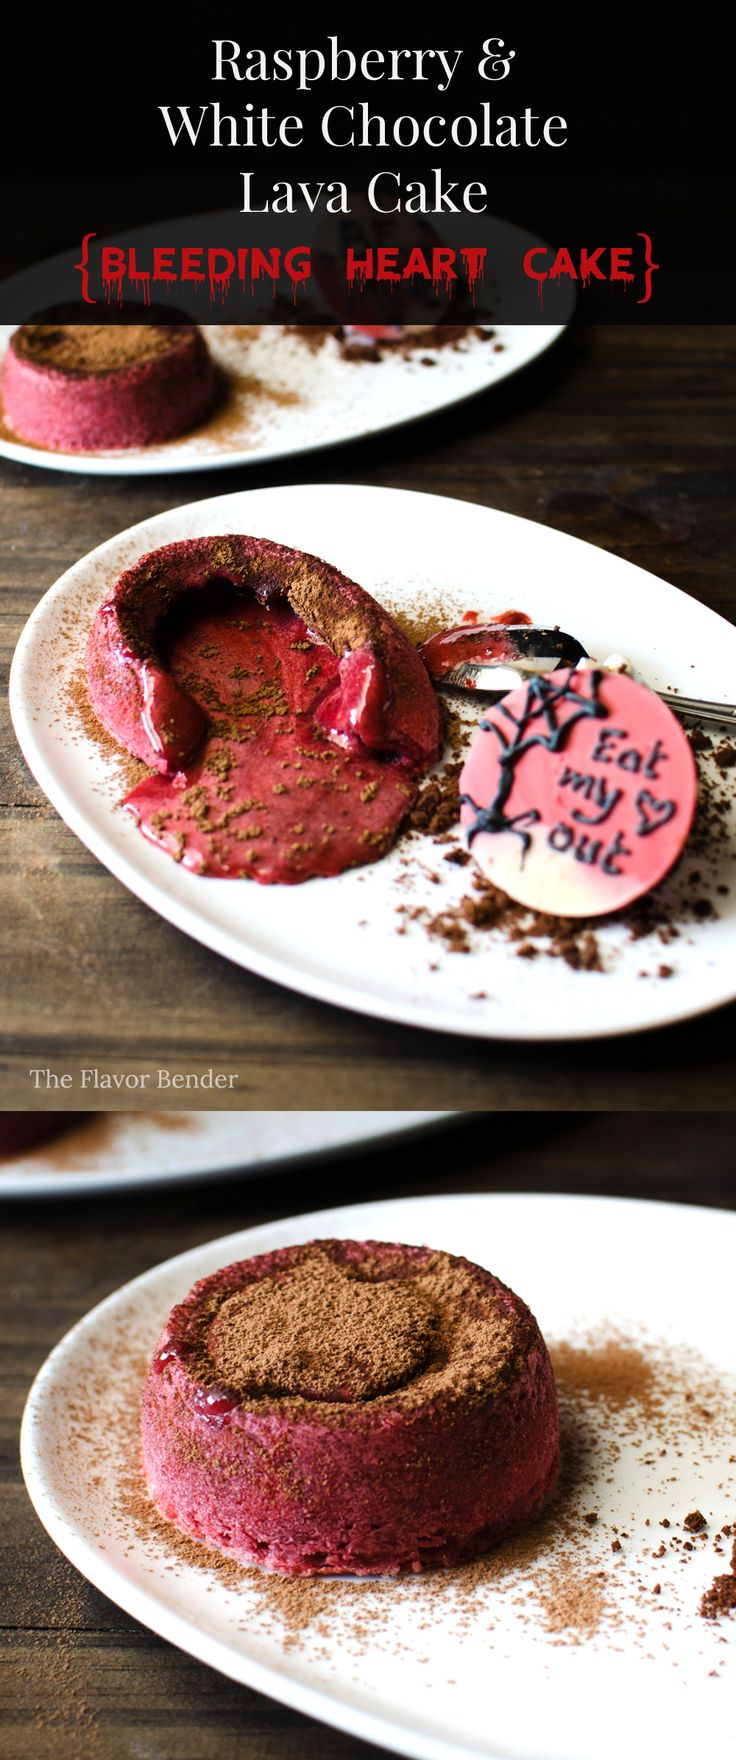 Raspberry White Chocolate Lava Cake {The Bleeding Heart Cake} - A delightfully decadent cake that is deliciously grotesque for Halloween or disturbingly romantic for valentines! The perfect dessert for the overly attached girlfriend!